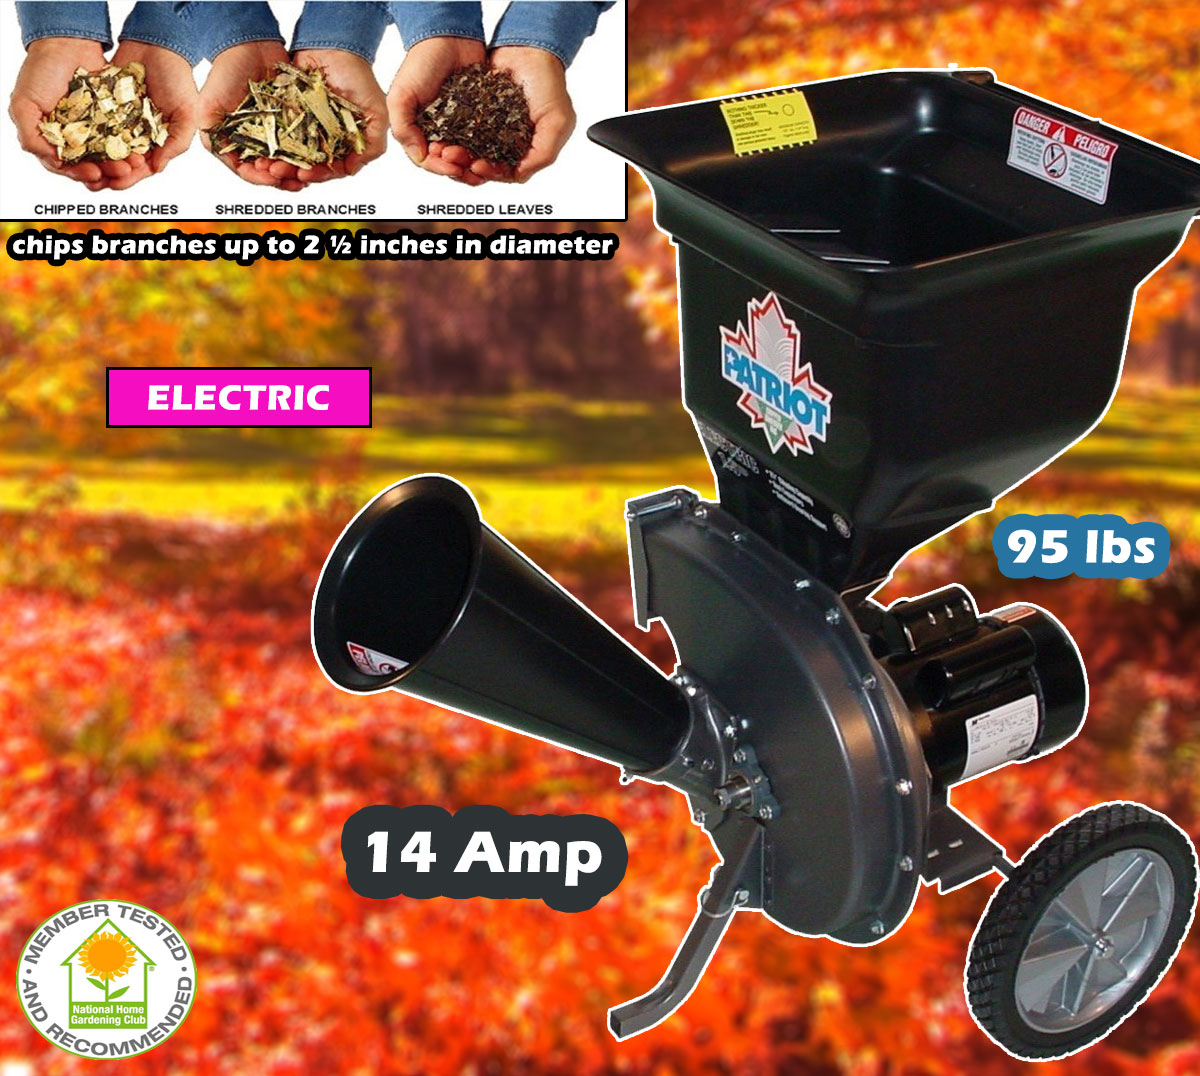 Patriot Products CSV-2515 Wood Chipper Leaf Shredder